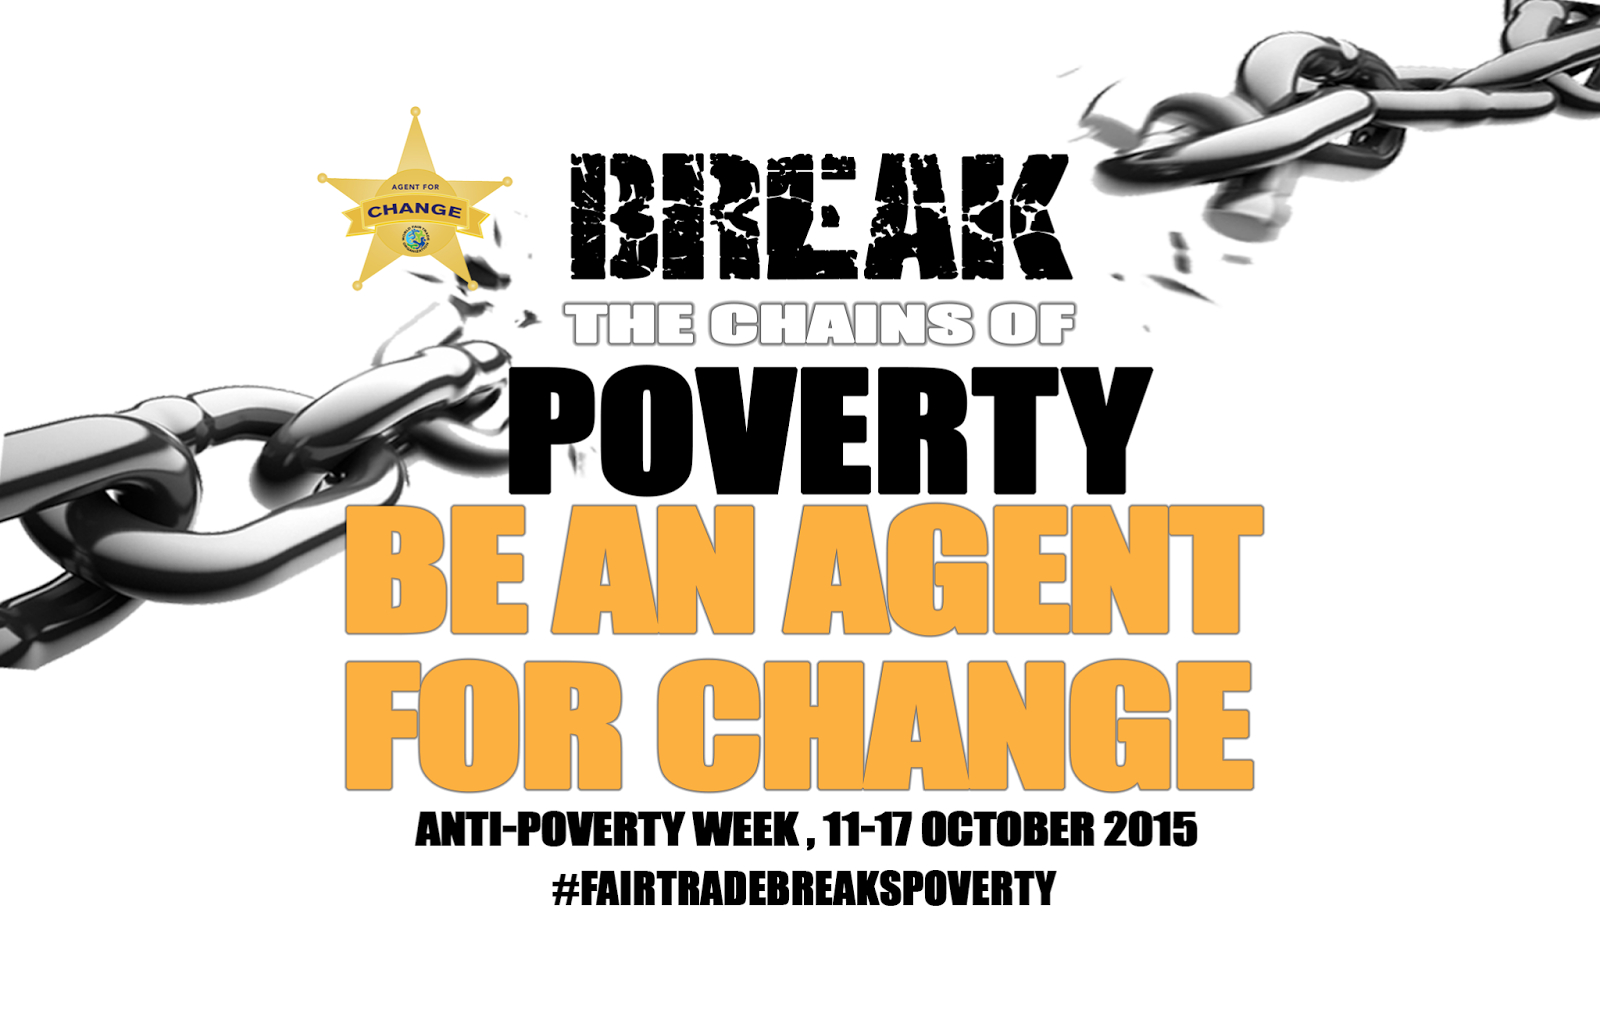 fair trade breaks the chains of poverty